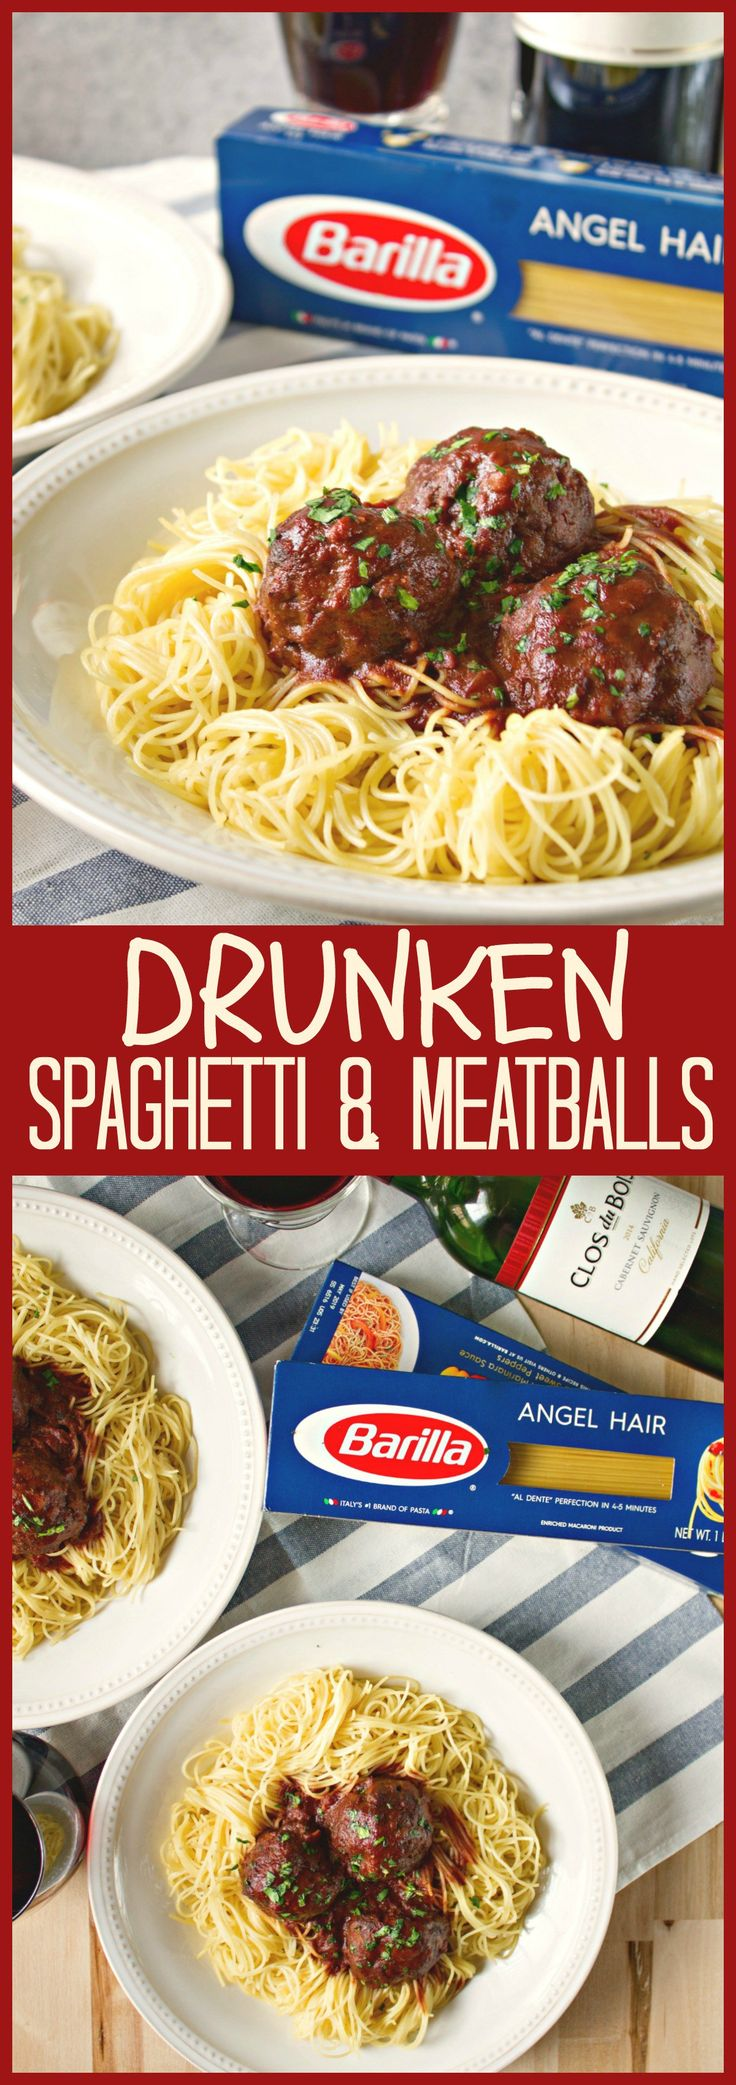 A childhood favorite, with an adult twist. These meatballs are soaked in a rich, red wine gravy and pairs perfectly with Barilla Angel Hair pasta.